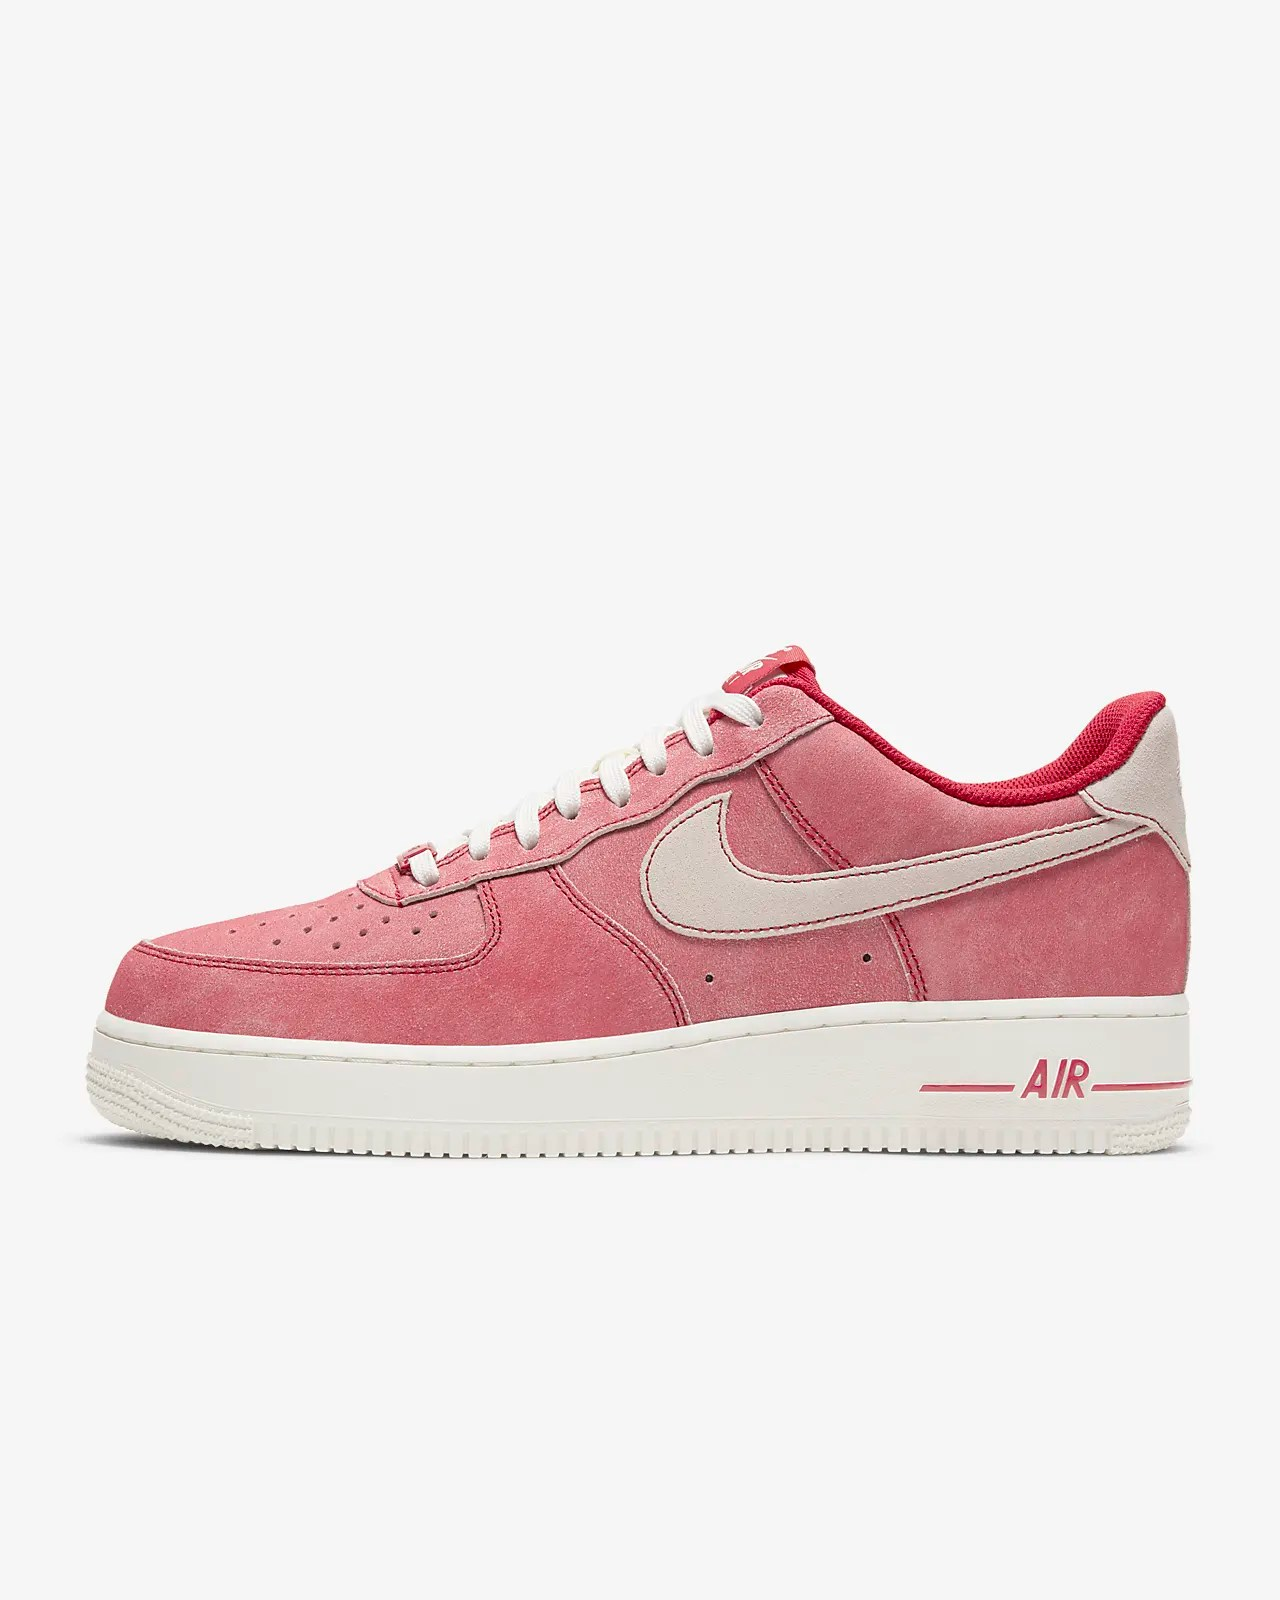 Nike Air Force 1 '07 LV8 'Gym Red'